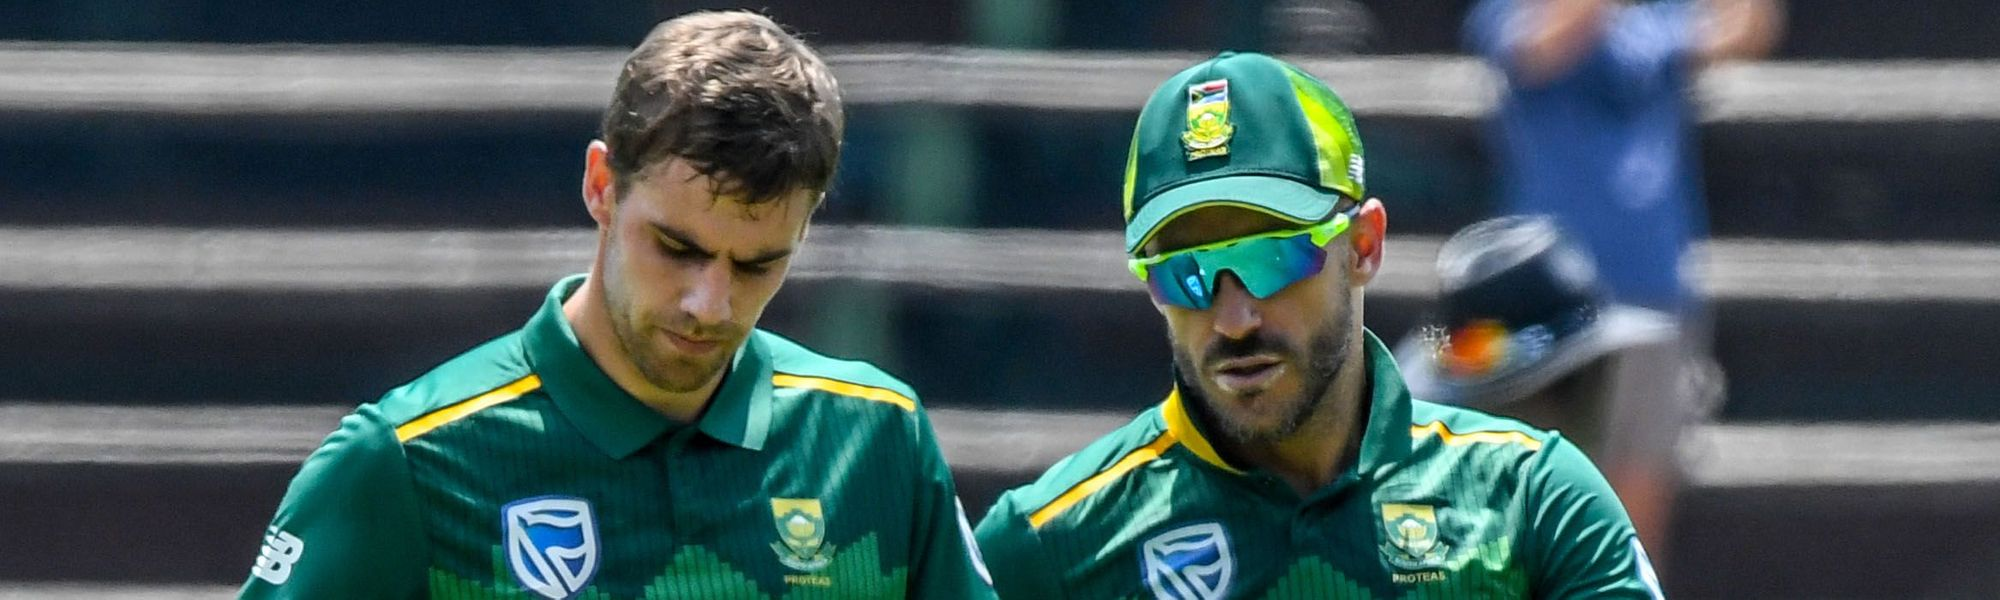 Nortje and du Plessis